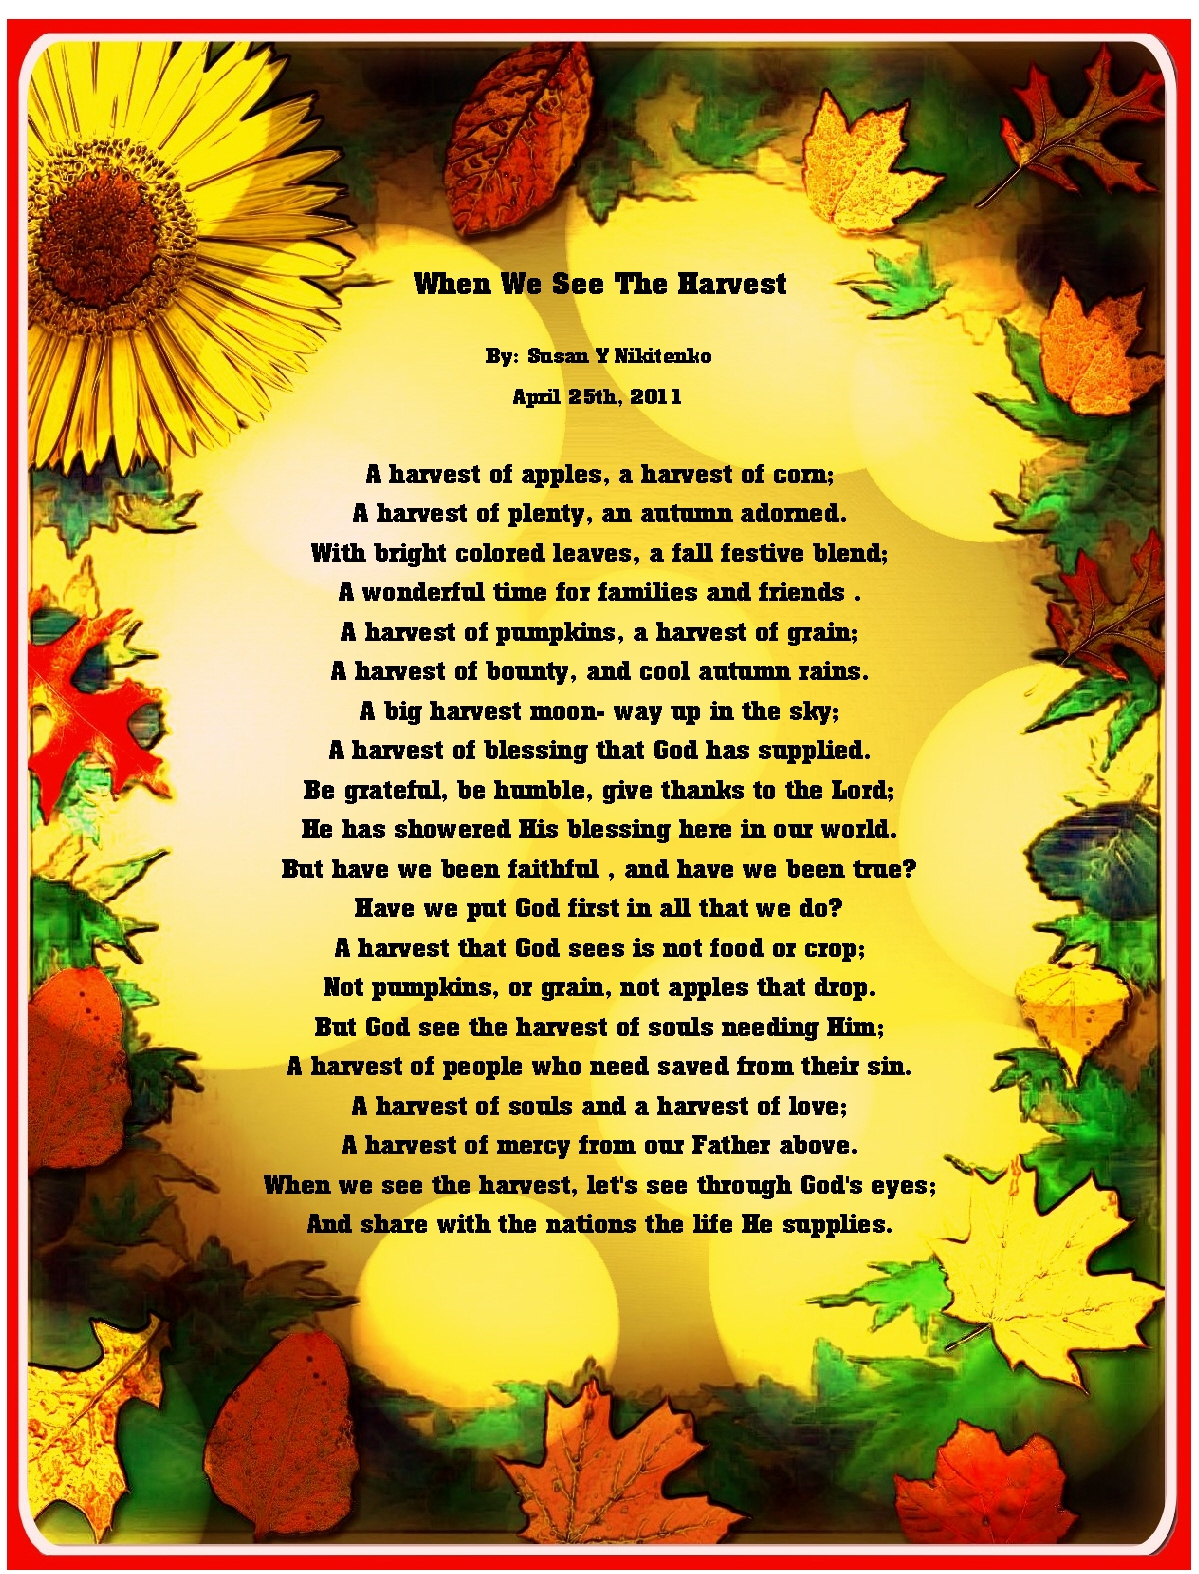 ... In My Treasure Box: Fall Harvest Poem Posters - updated September 21st